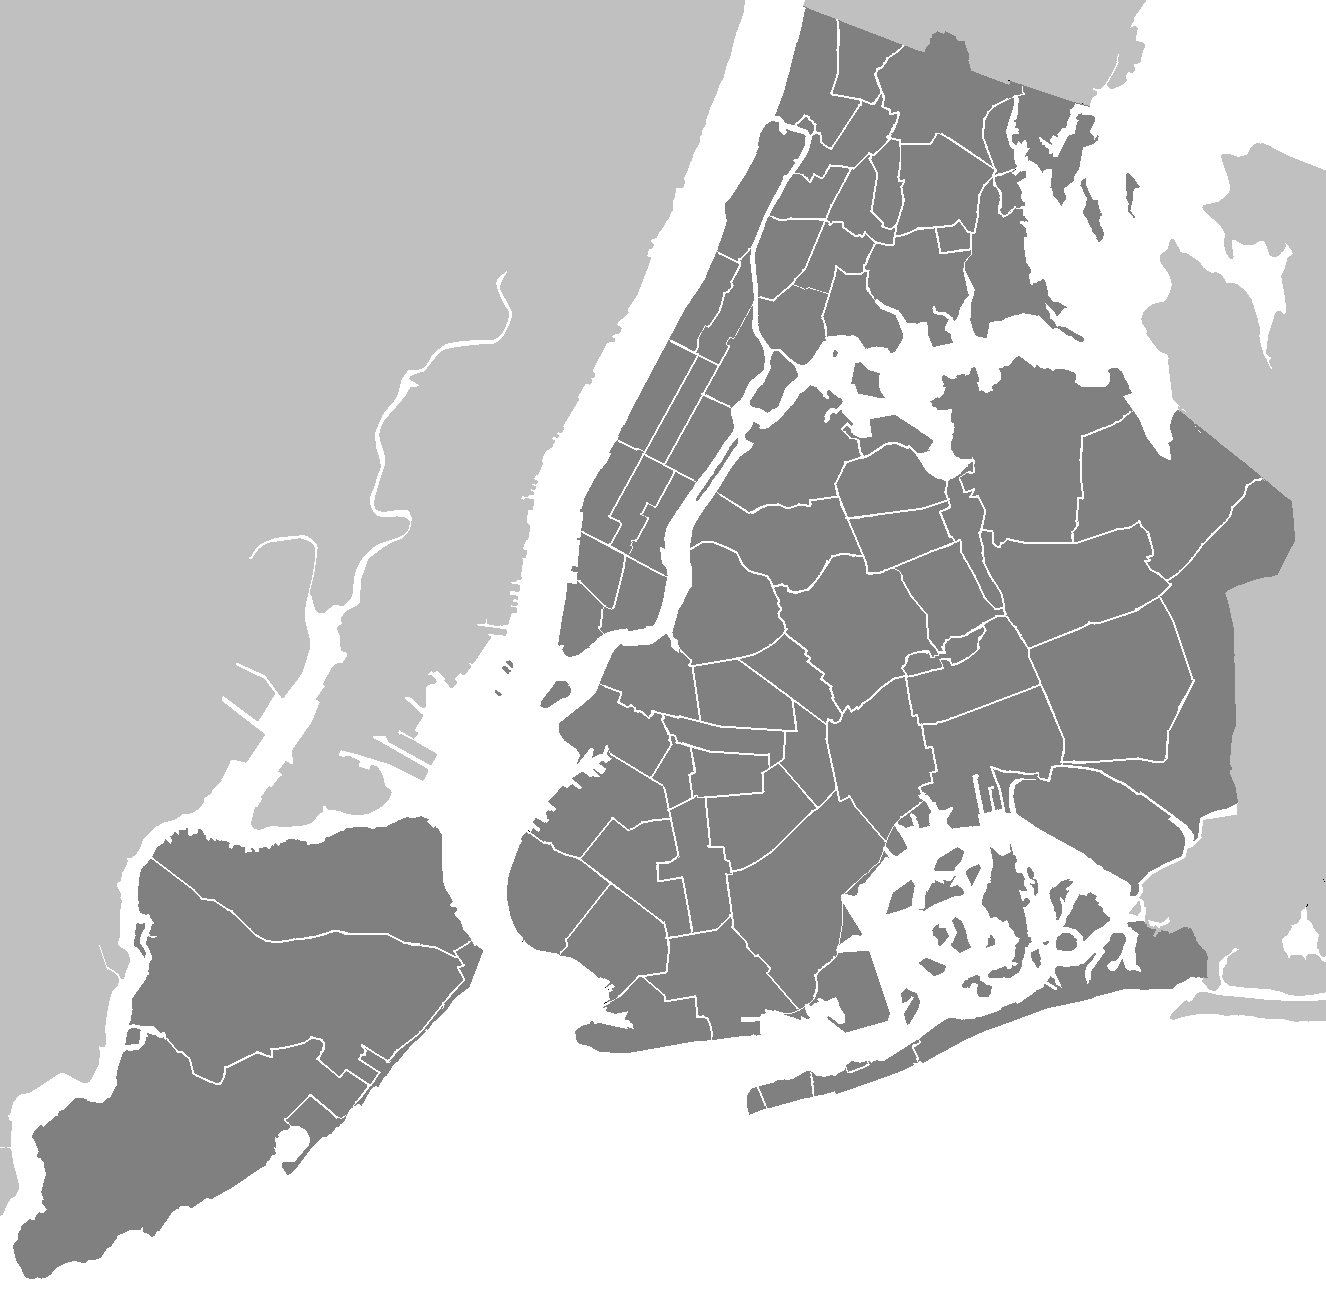 File:Neighbourhoods New York City Map.PNG.